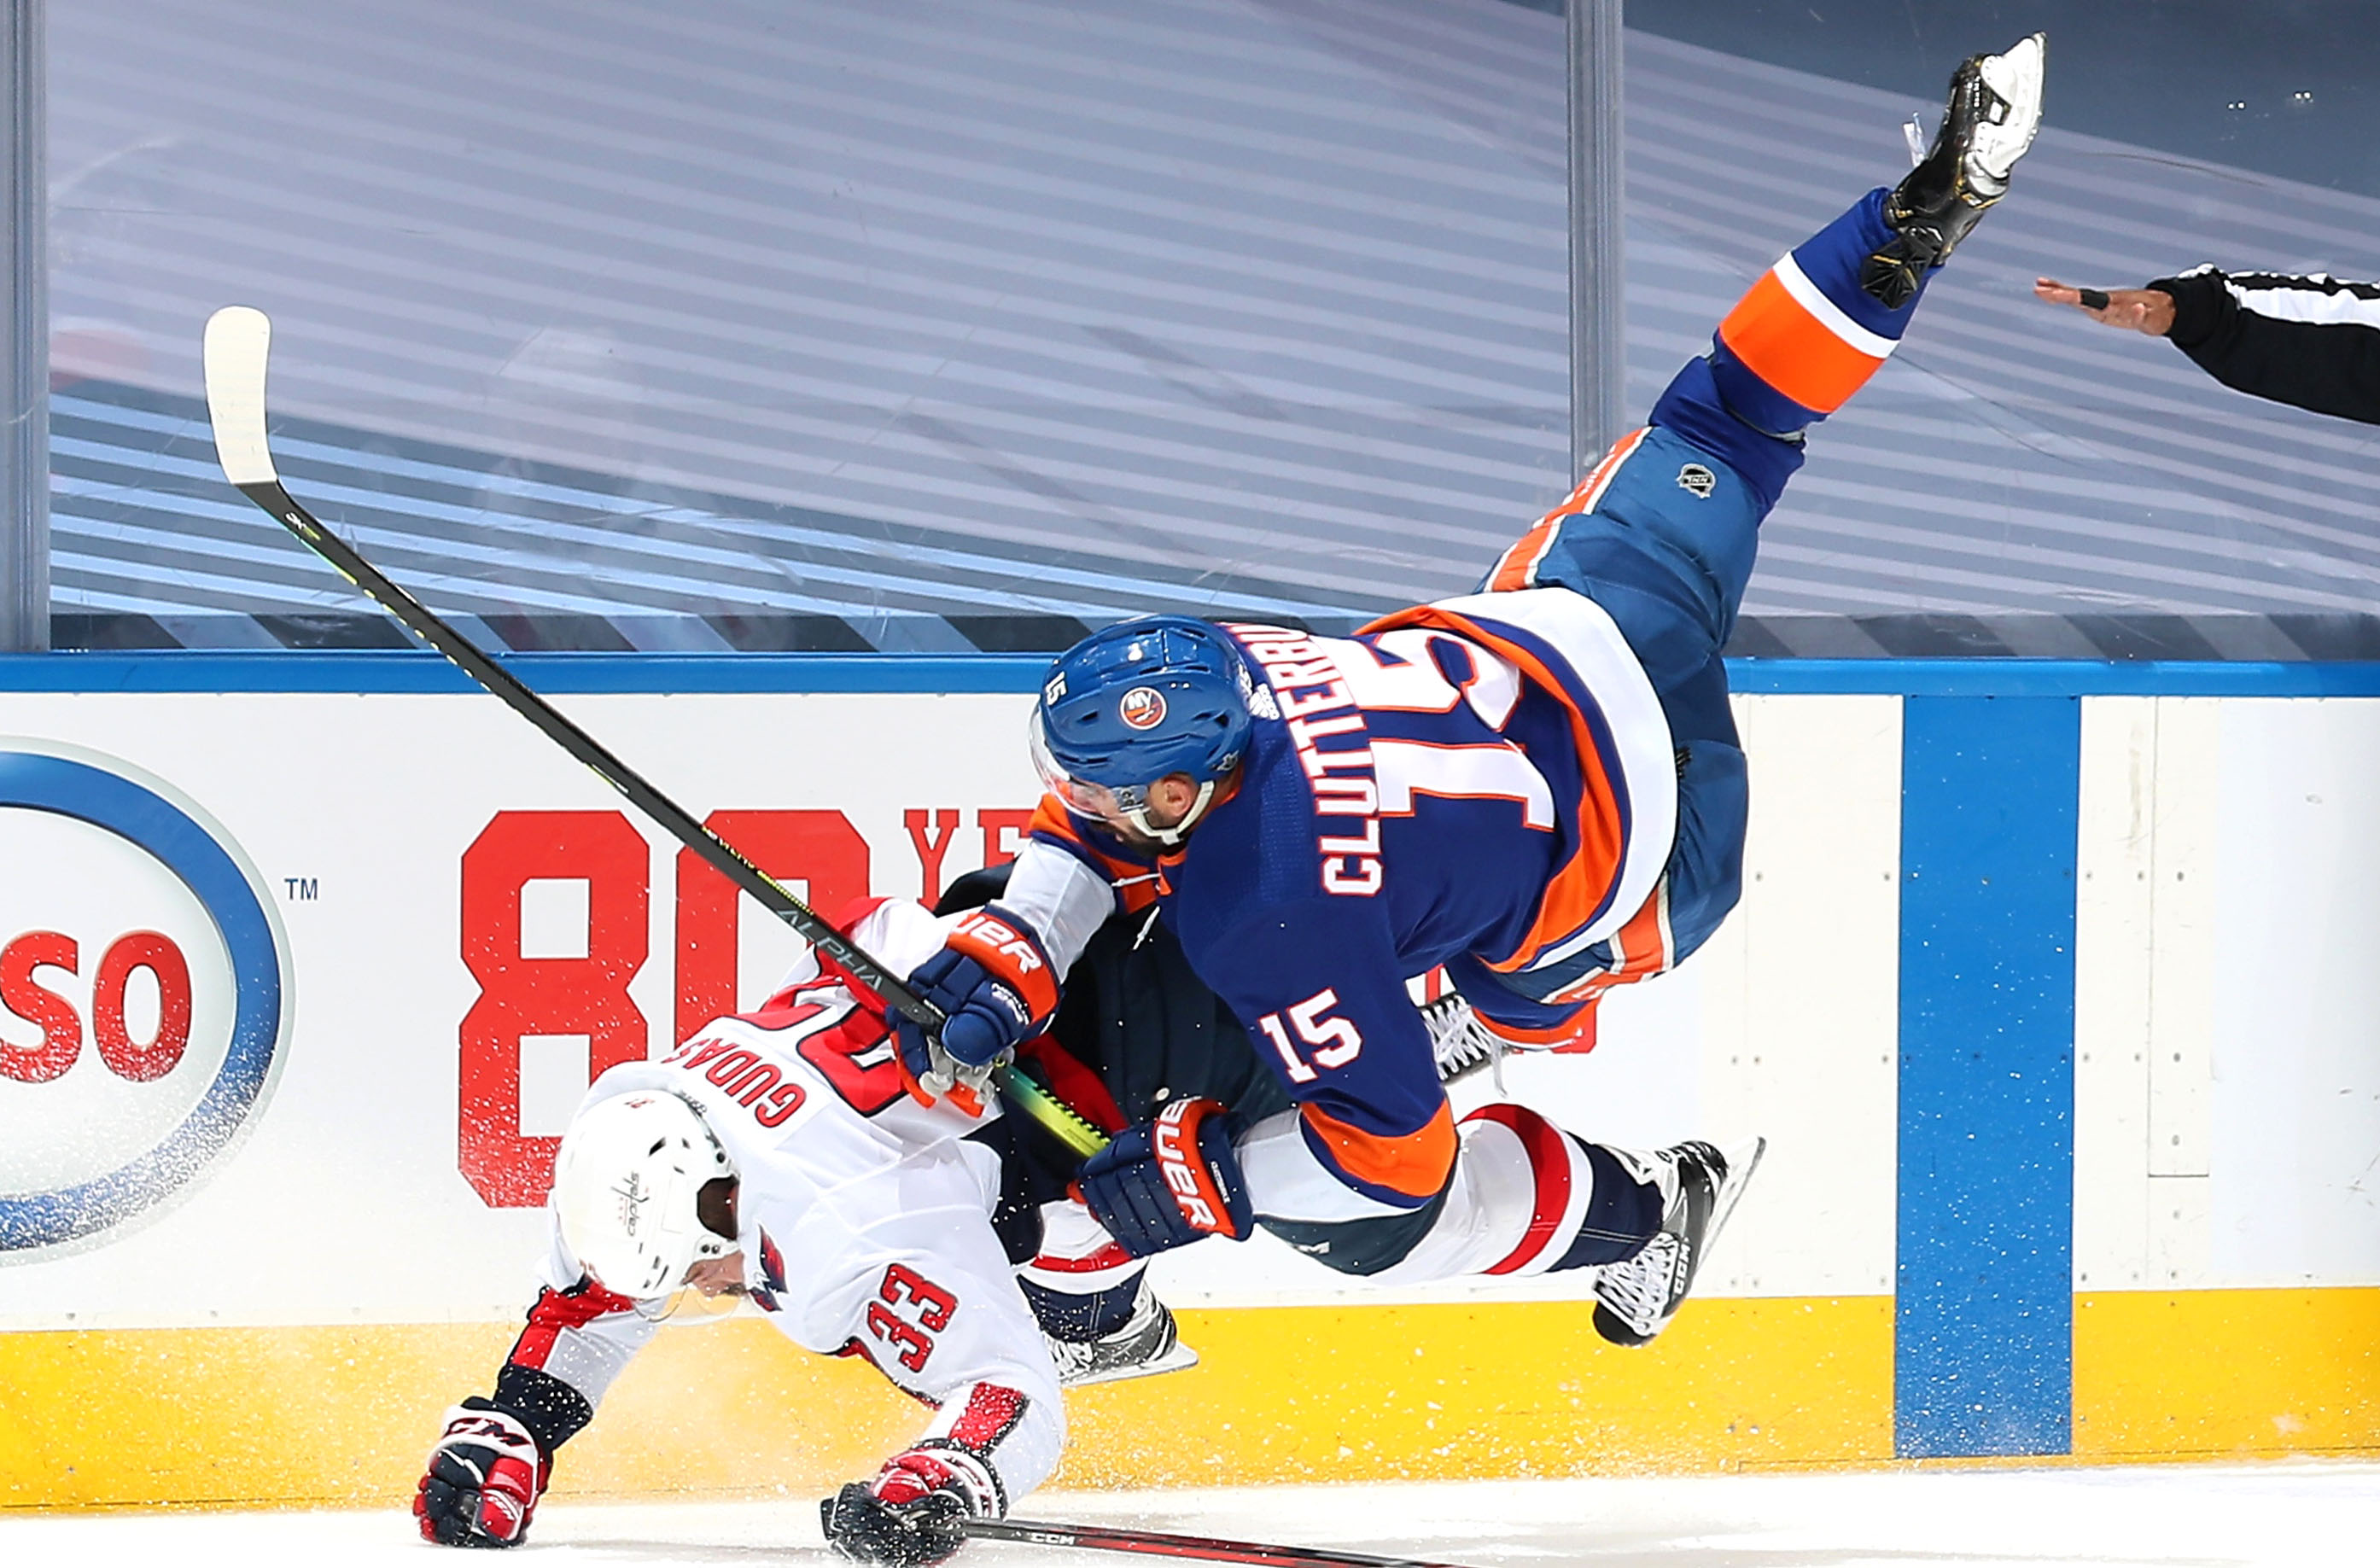 Islanders' Cal Clutterbuck exit with injury after low hit